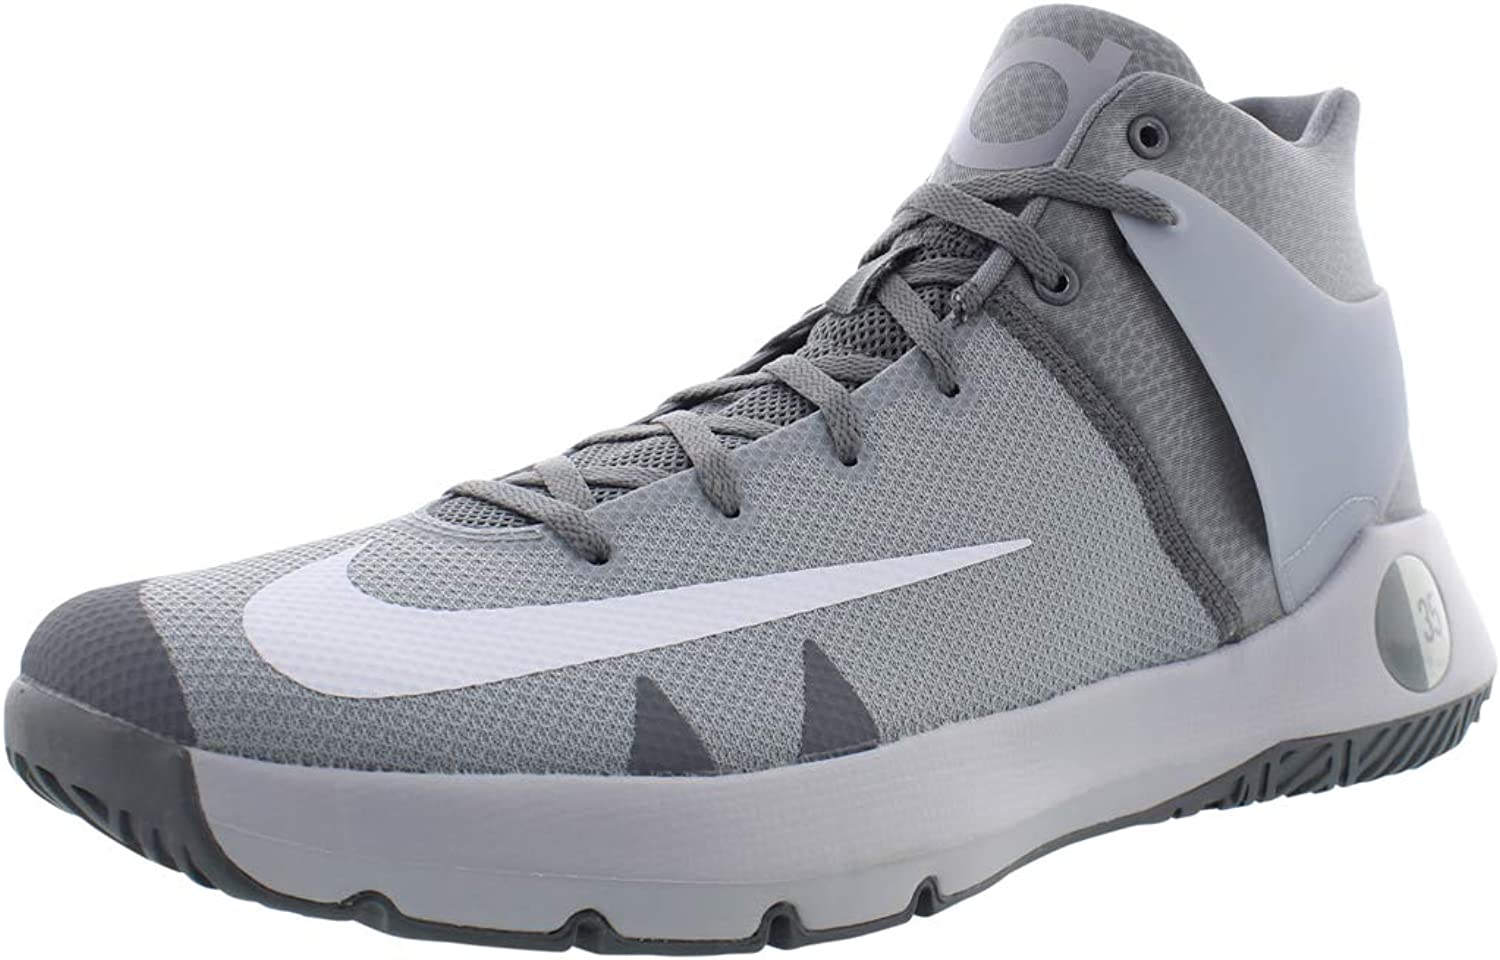 Nike 844571-011 Chaussures de Basketball Homme